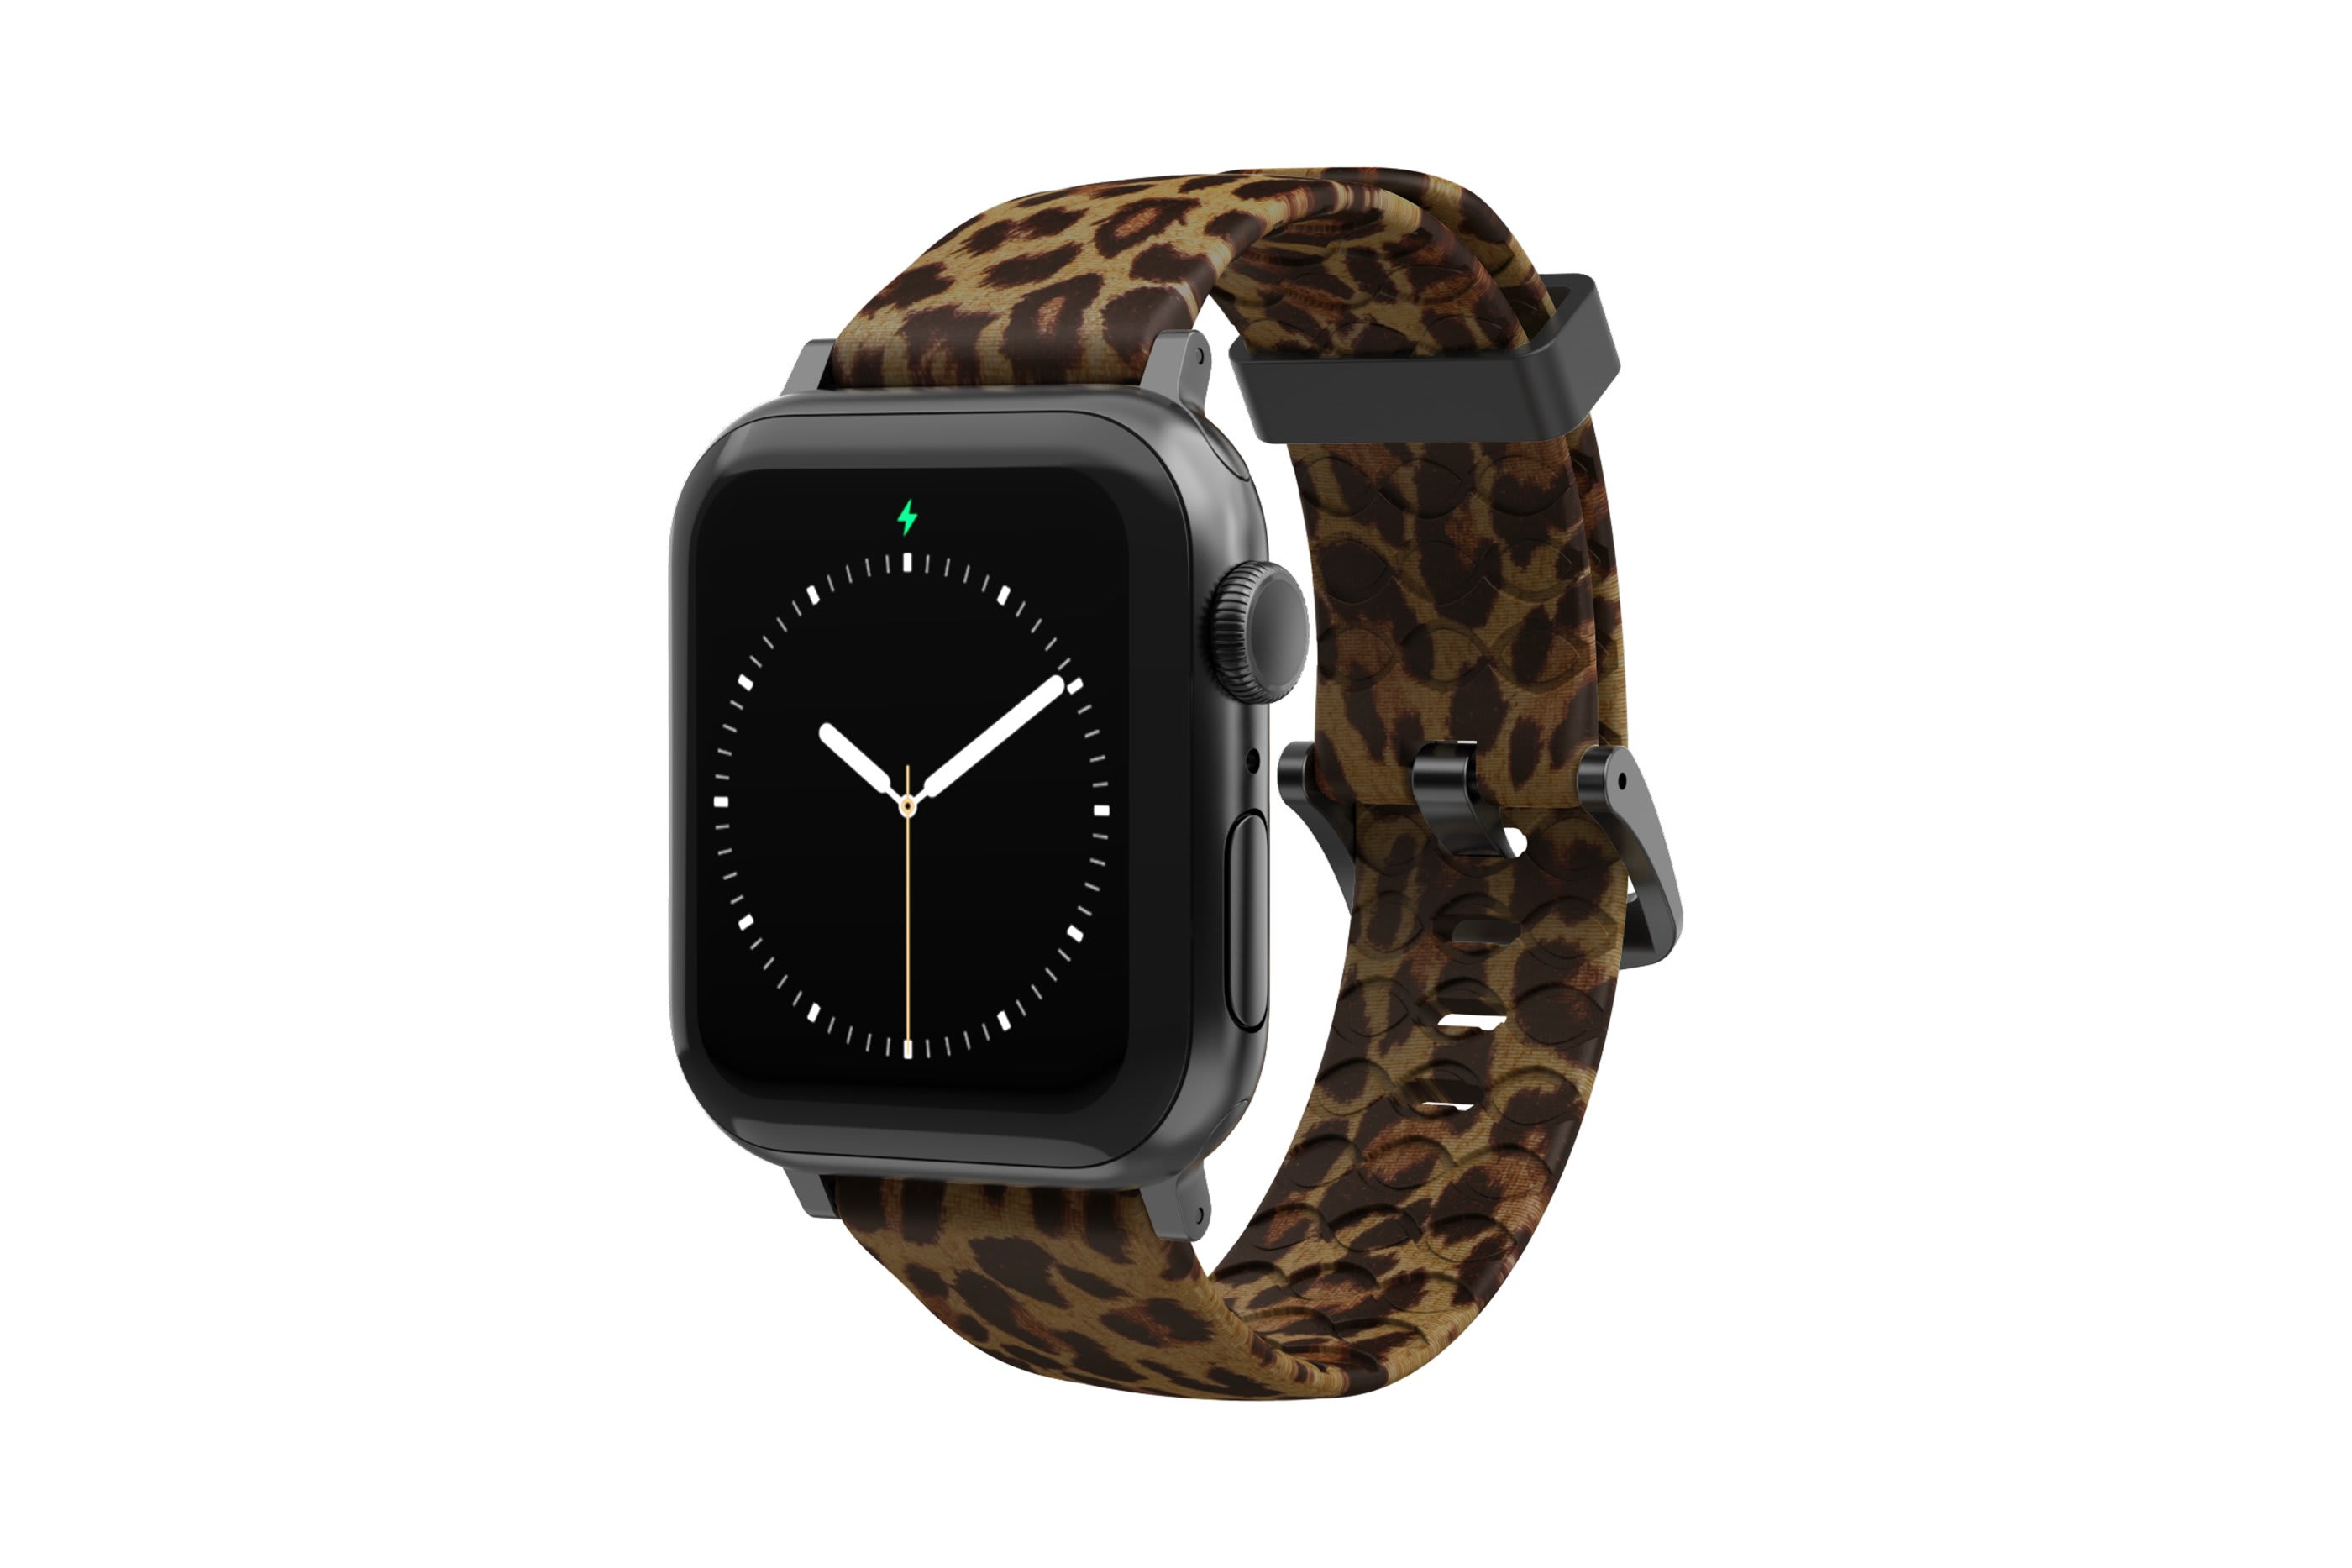 Leopard Apple Watch Band with gray Hardware viewed front on